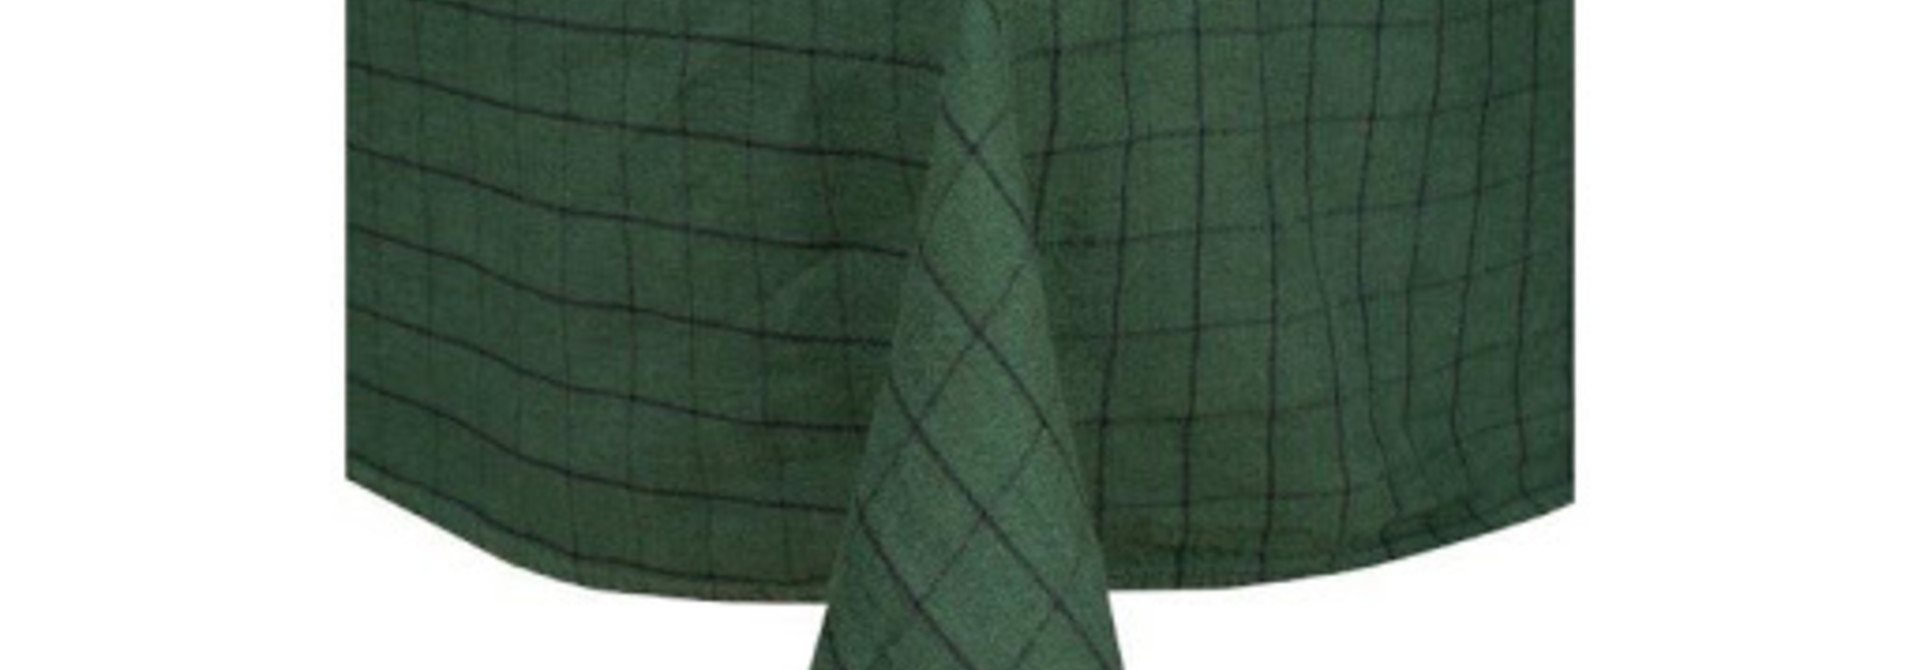 Chieti Tablecloth - Forest Green